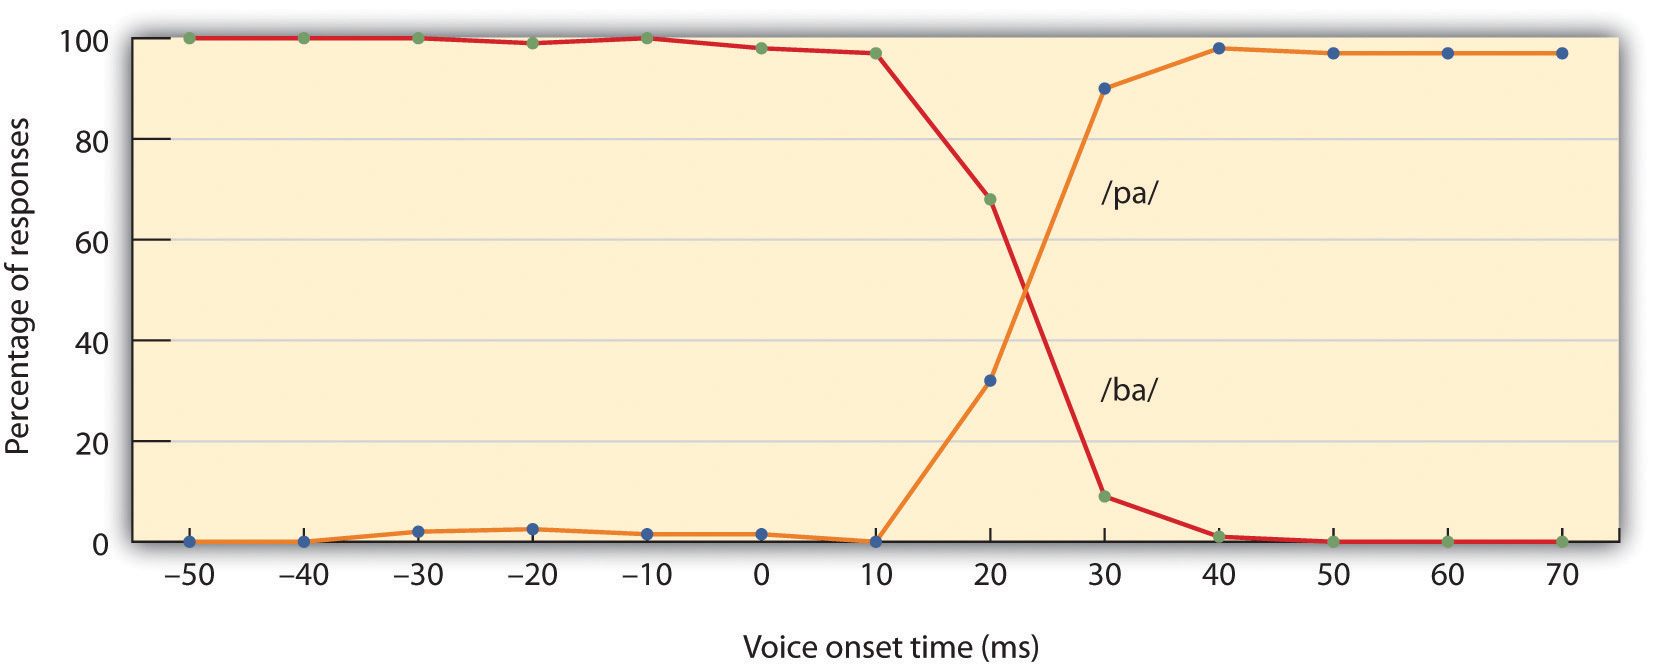 When adults hear speech sounds that gradually change from one phoneme to another, they do not hear the continuous change; rather, they hear one sound until they suddenly begin hearing the other. In this case, the change is from /ba/ to /pa/.